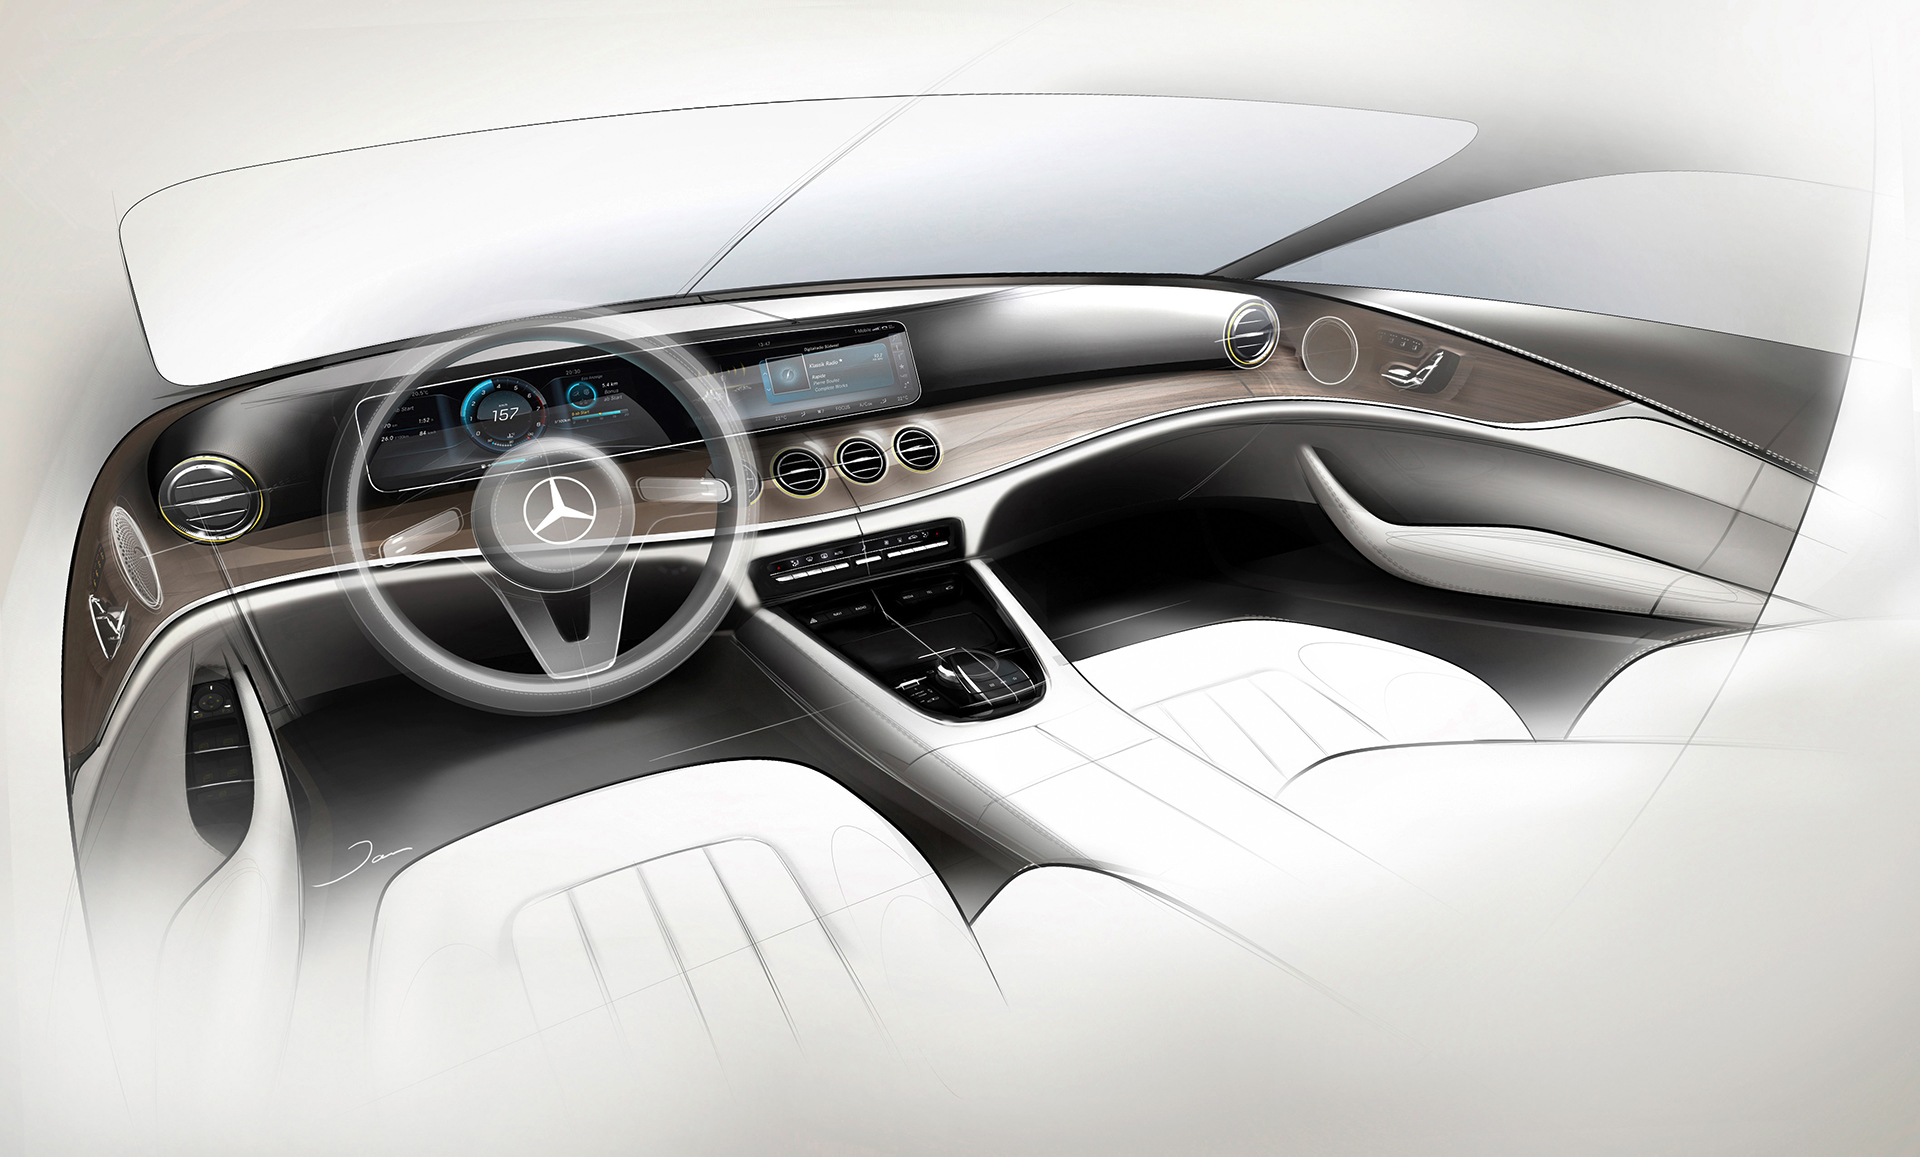 Mercedes-Benz E Class - 2016 - sketch design - interior / intérieur